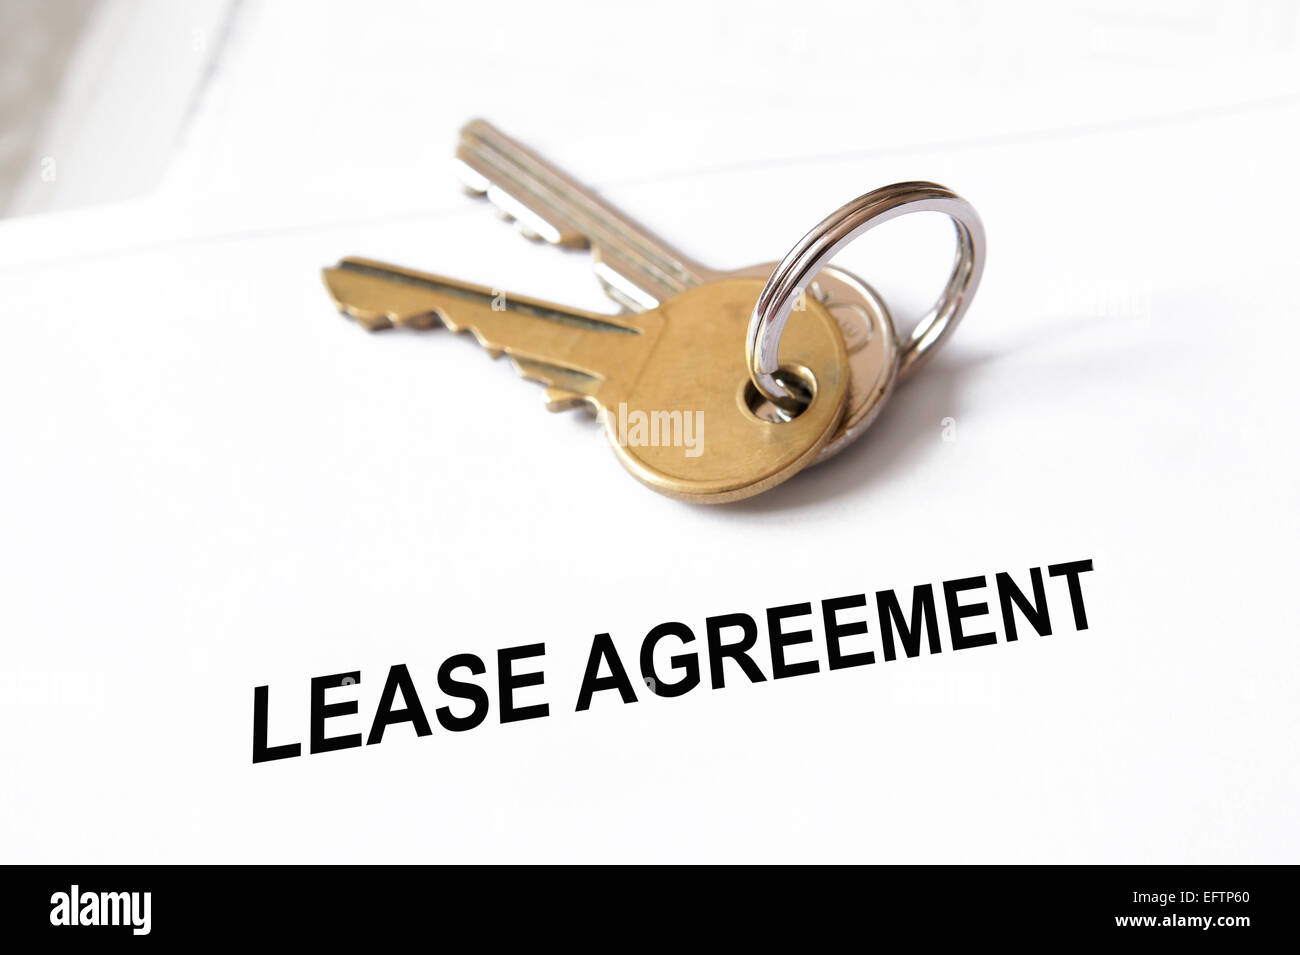 lease agreement - Stock Image